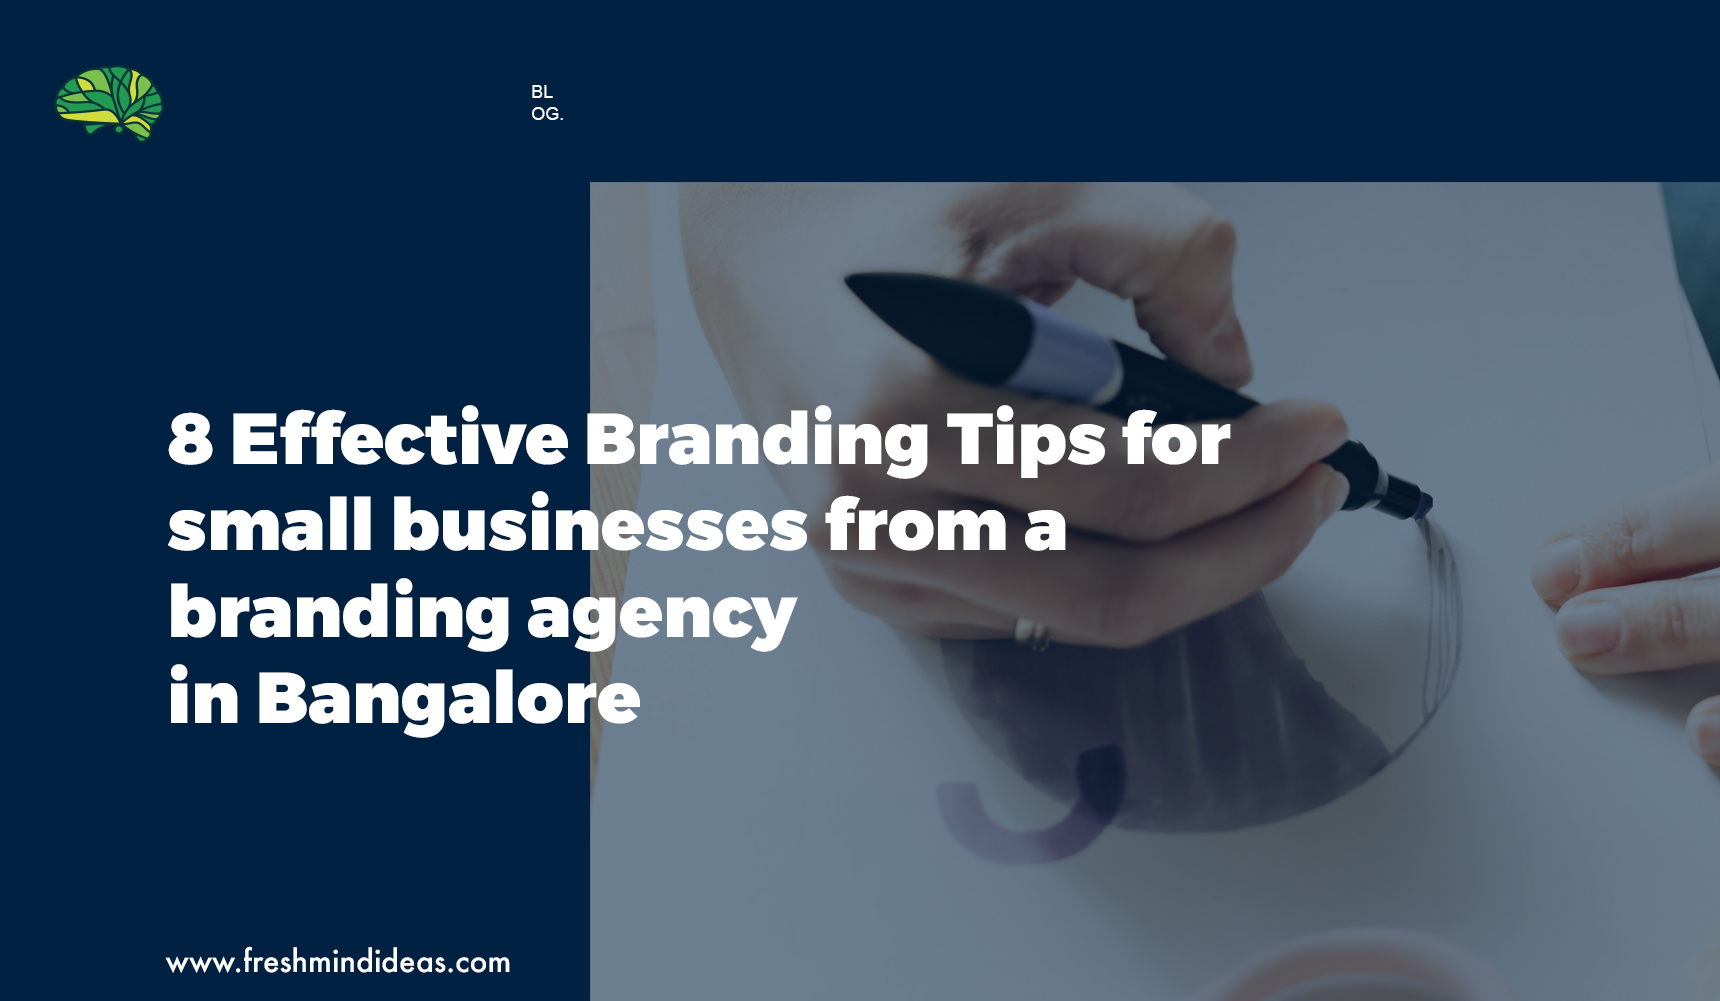 8 Effective Branding Tips for small businesses from a branding agency in Bangalore